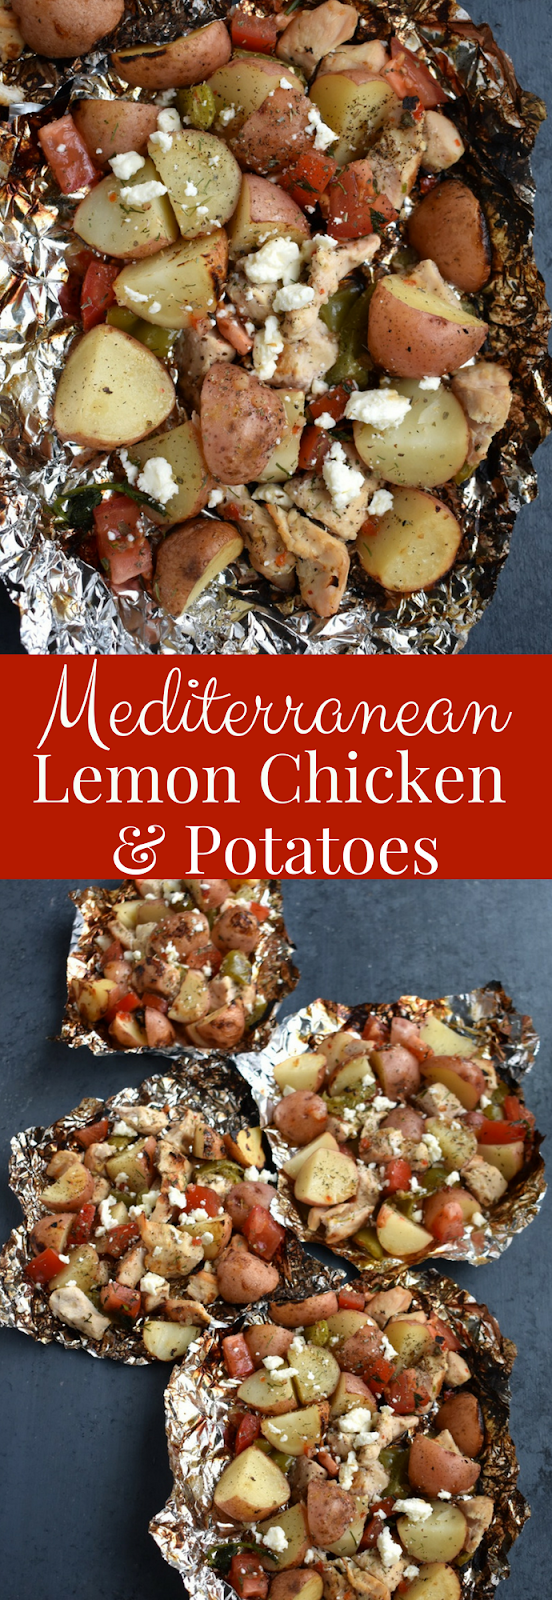 Mediterranean Lemon Chicken and Potatoes are cooked on the grill in a foil packet and are ready in under 30 minutes! Filled with red potatoes, lemon chicken, tomato, dill, green pepper and feta cheese. www.nutritionistreviews.com